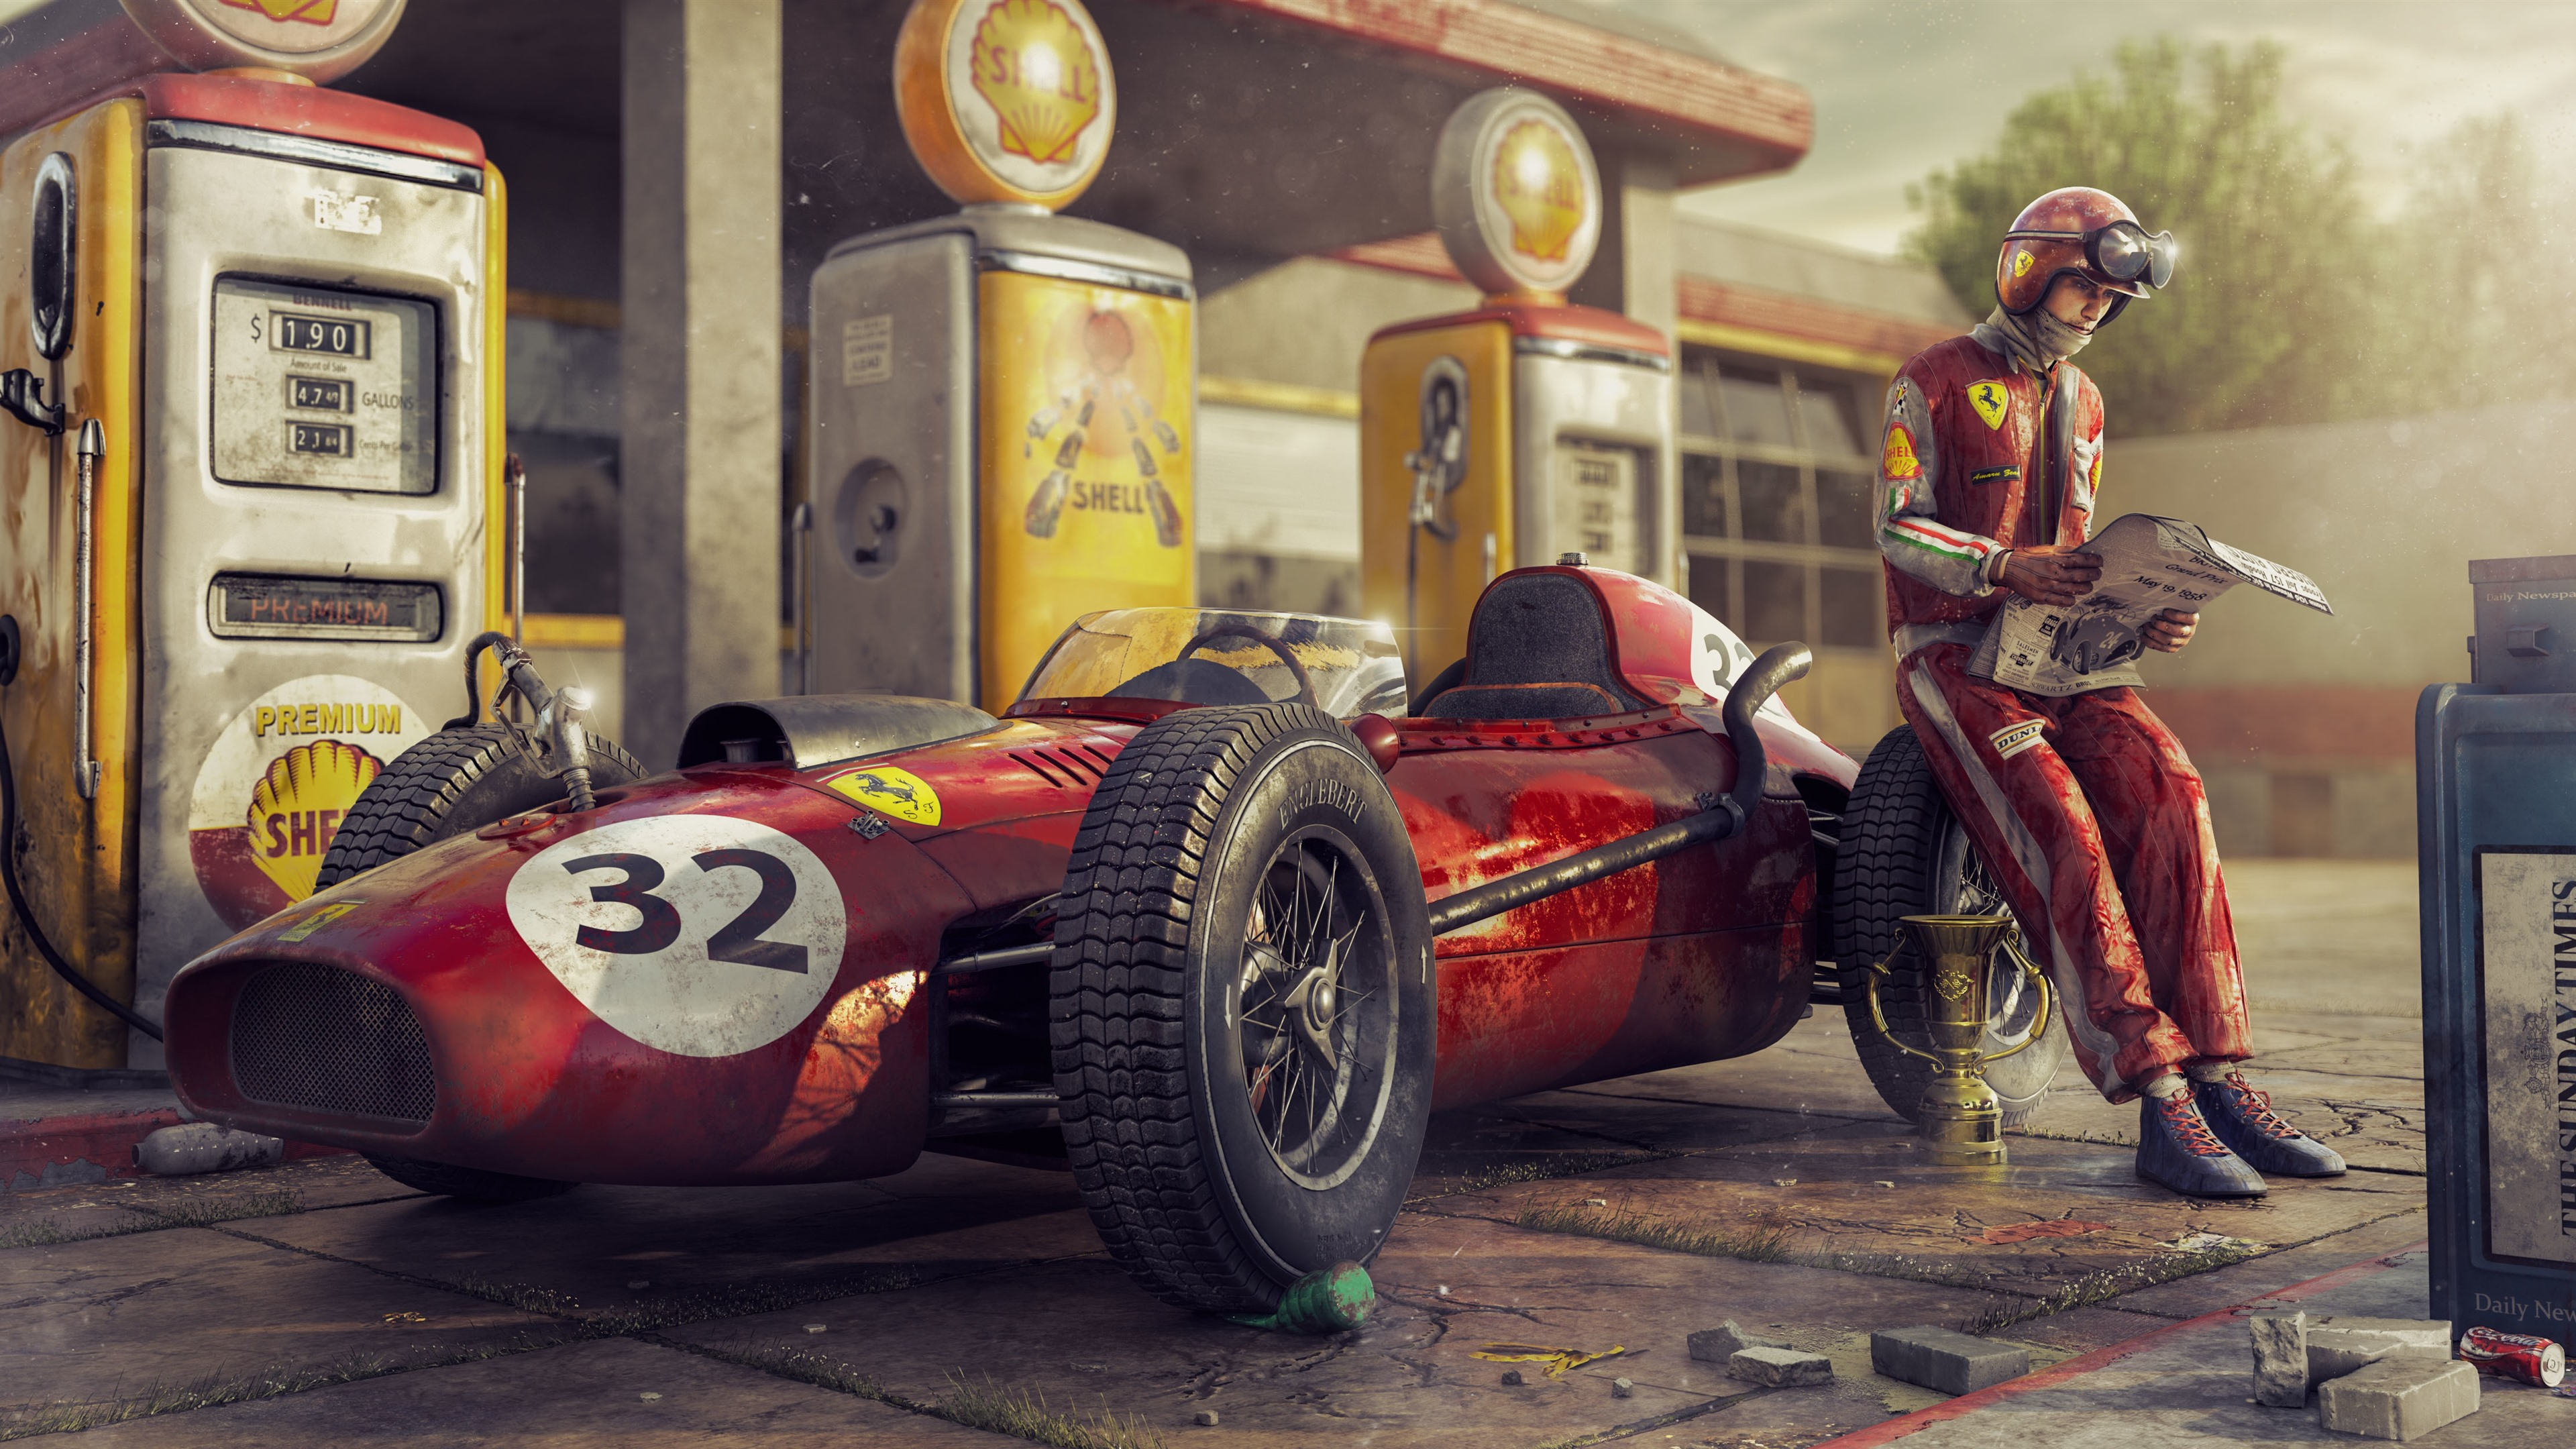 Wallpaper Ferrari F1 Racing Car Retro Driver 3840x2160 Uhd 4k Picture Image